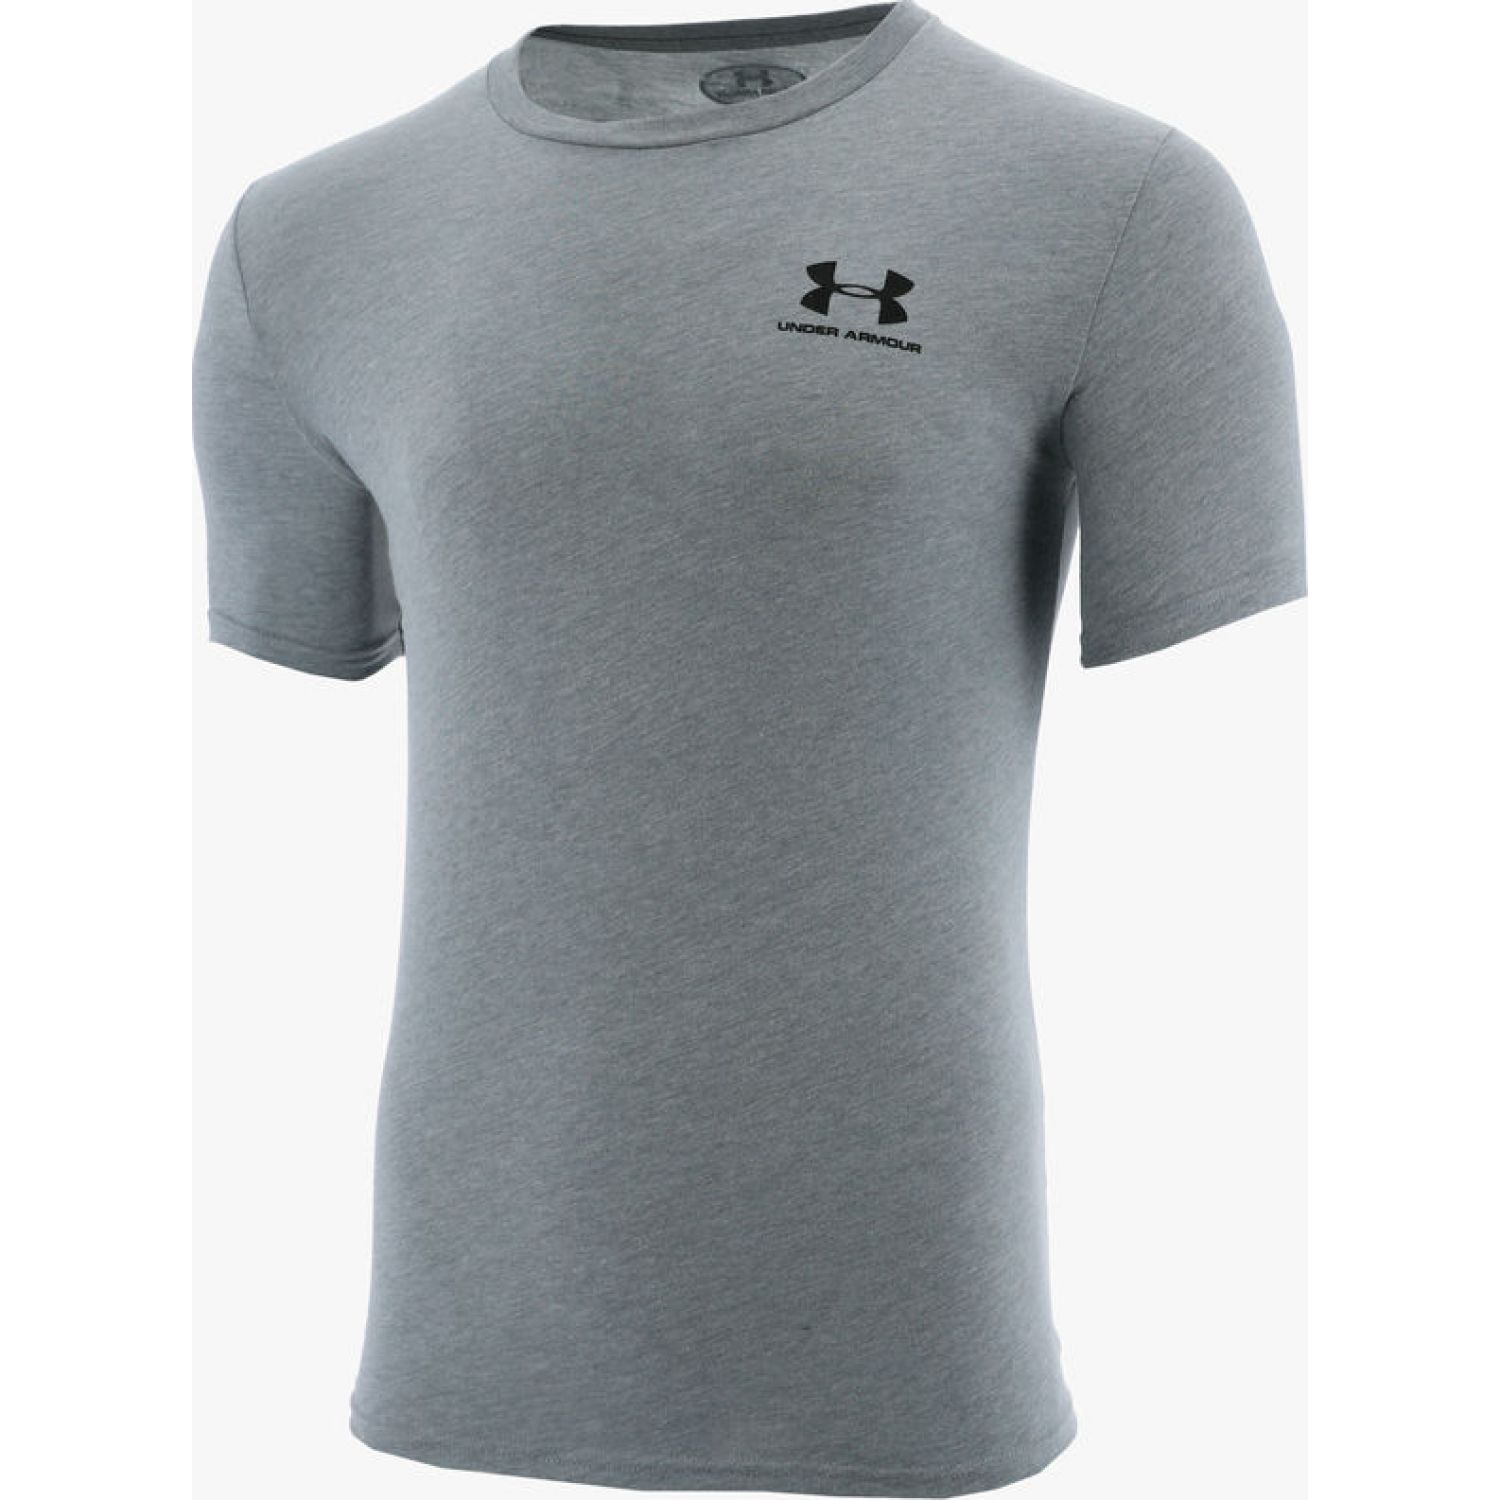 Under Armour Sportstyle Left Chest Ss Gris Camisetas y polos deportivos